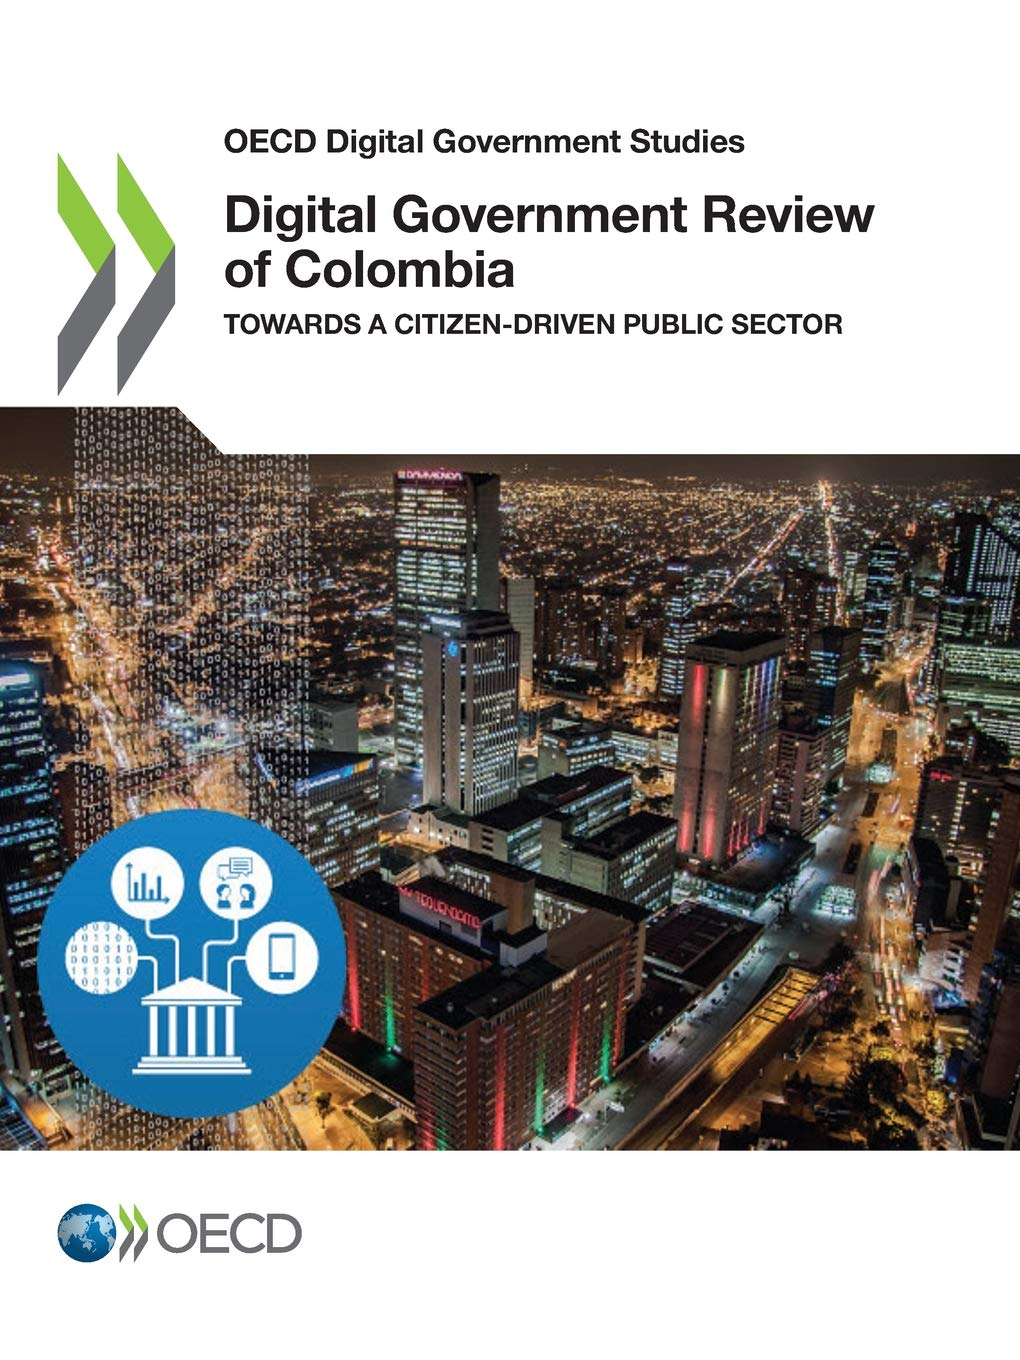 Download OECD Digital Government Studies Digital Government Review of Colombia:  Towards a Citizen-Driven Public Sector: Edition 2018 pdf